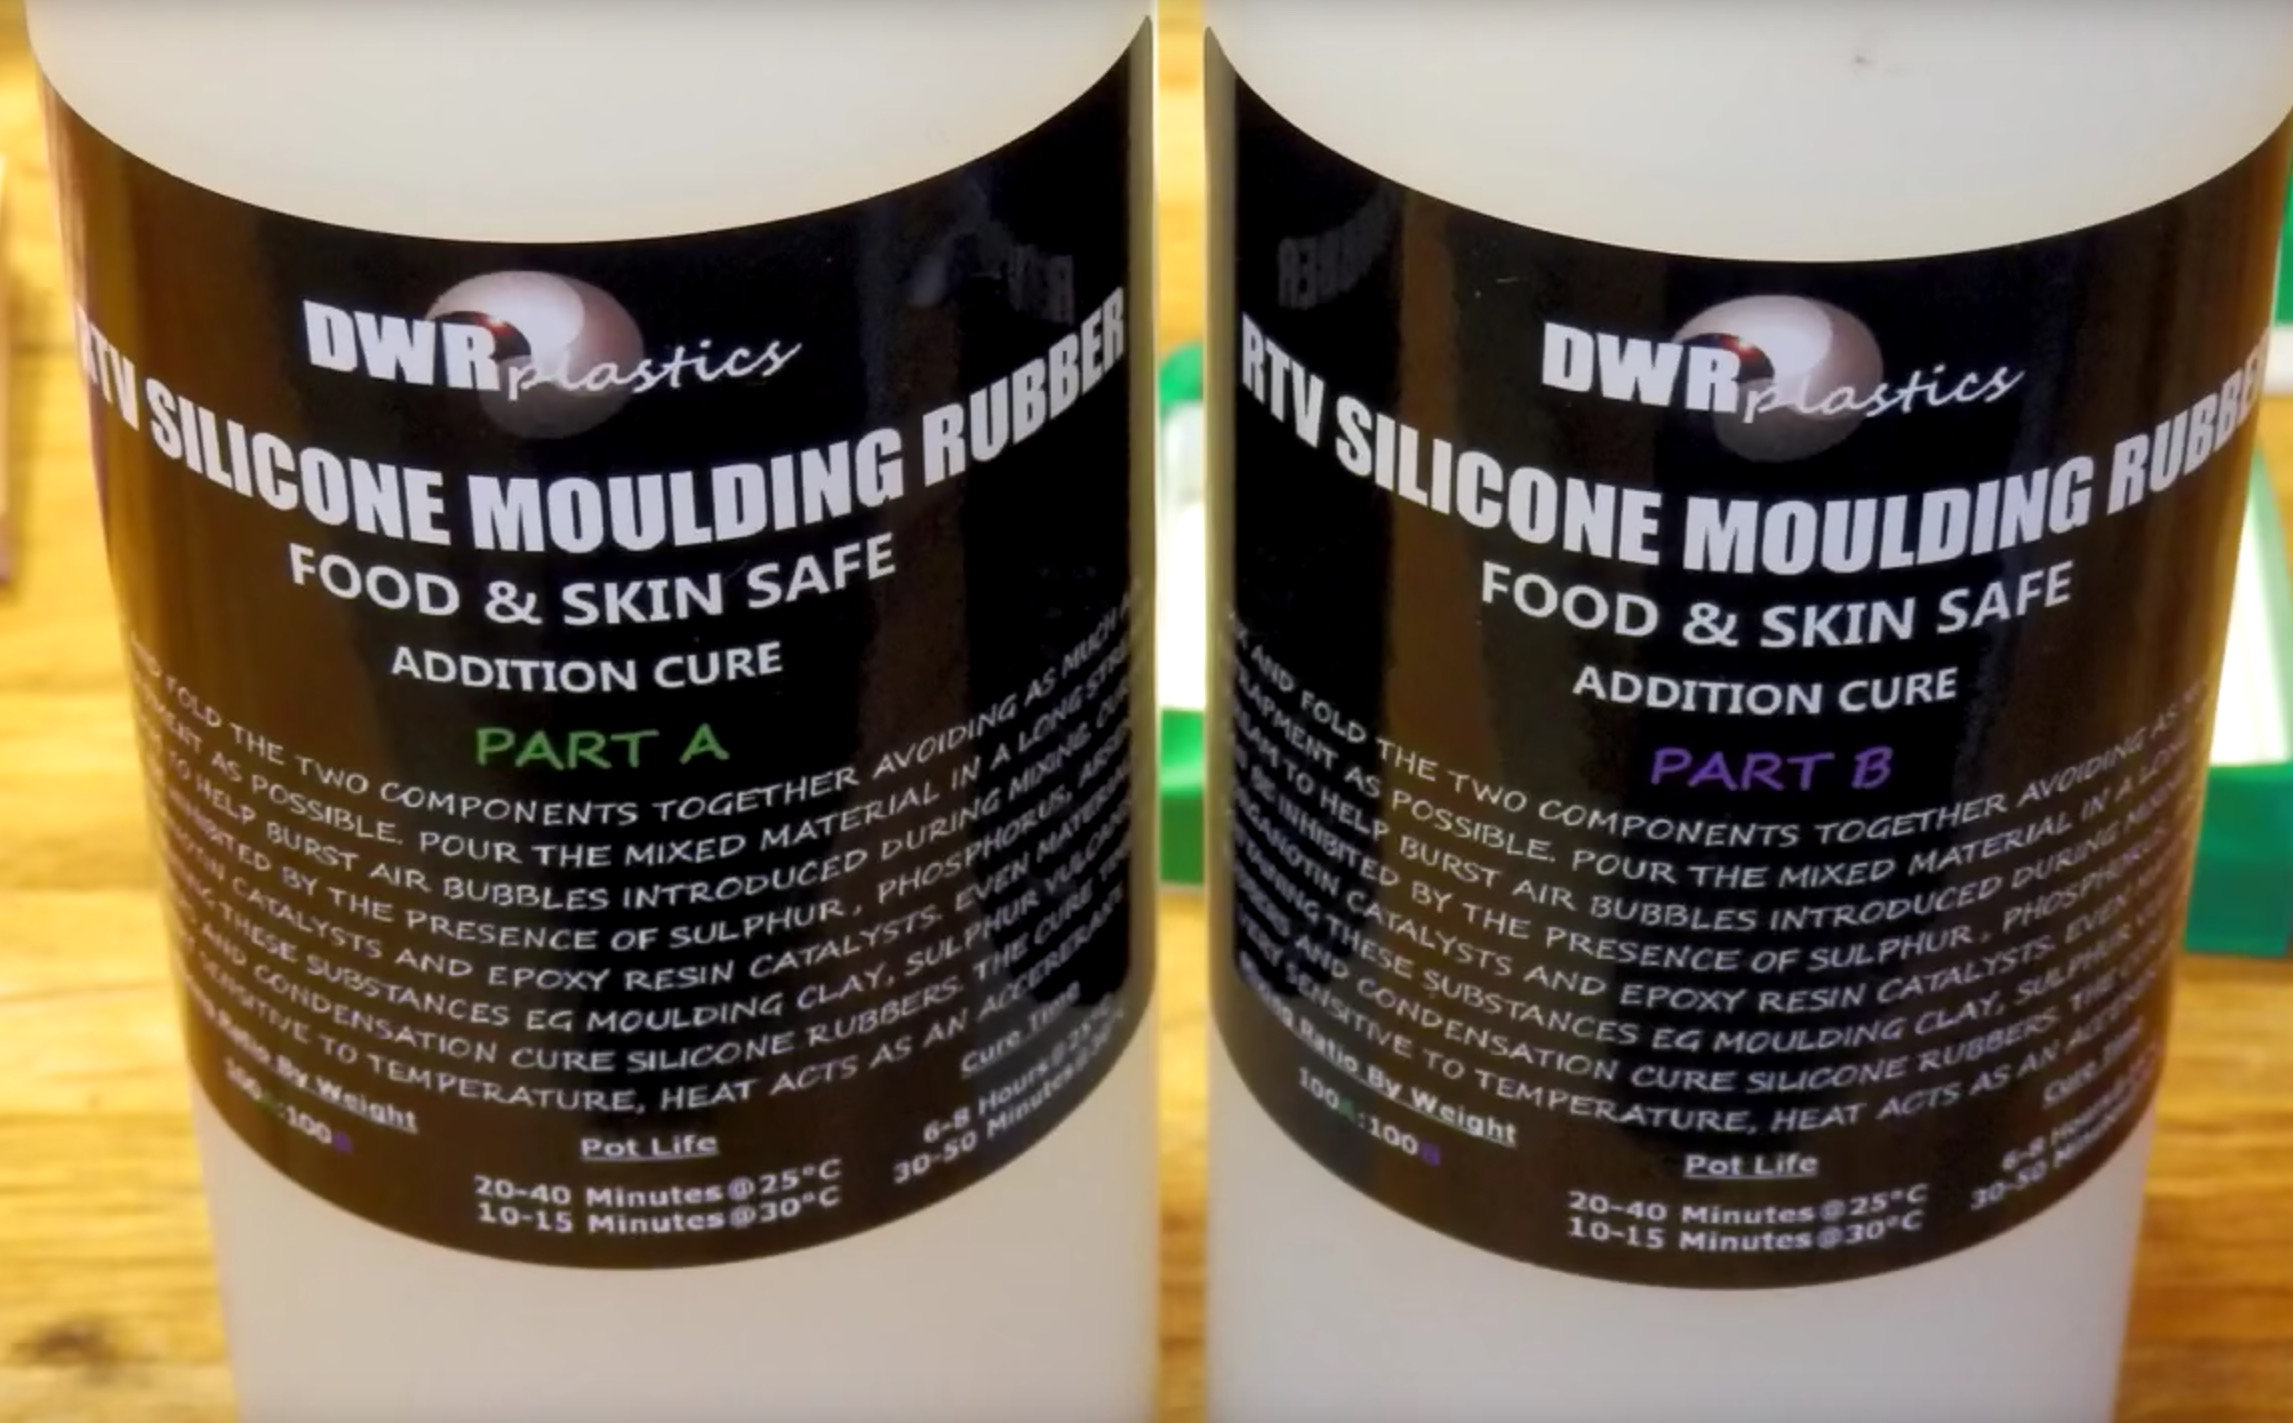 Food safe silicone moulding compound used in the experiment